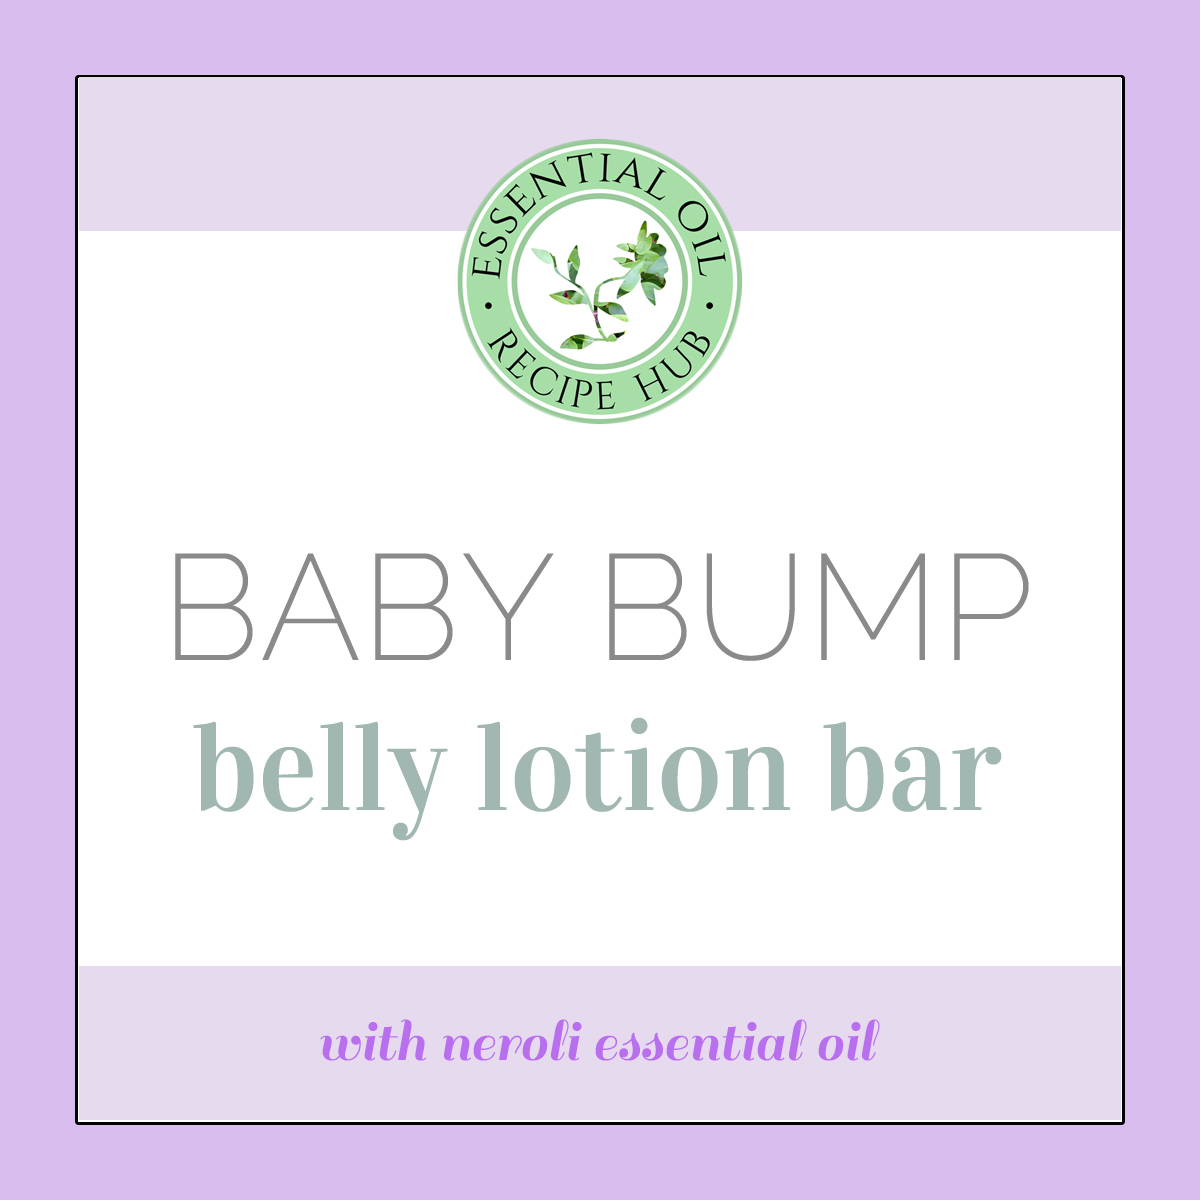 baby bump belly lotion bar